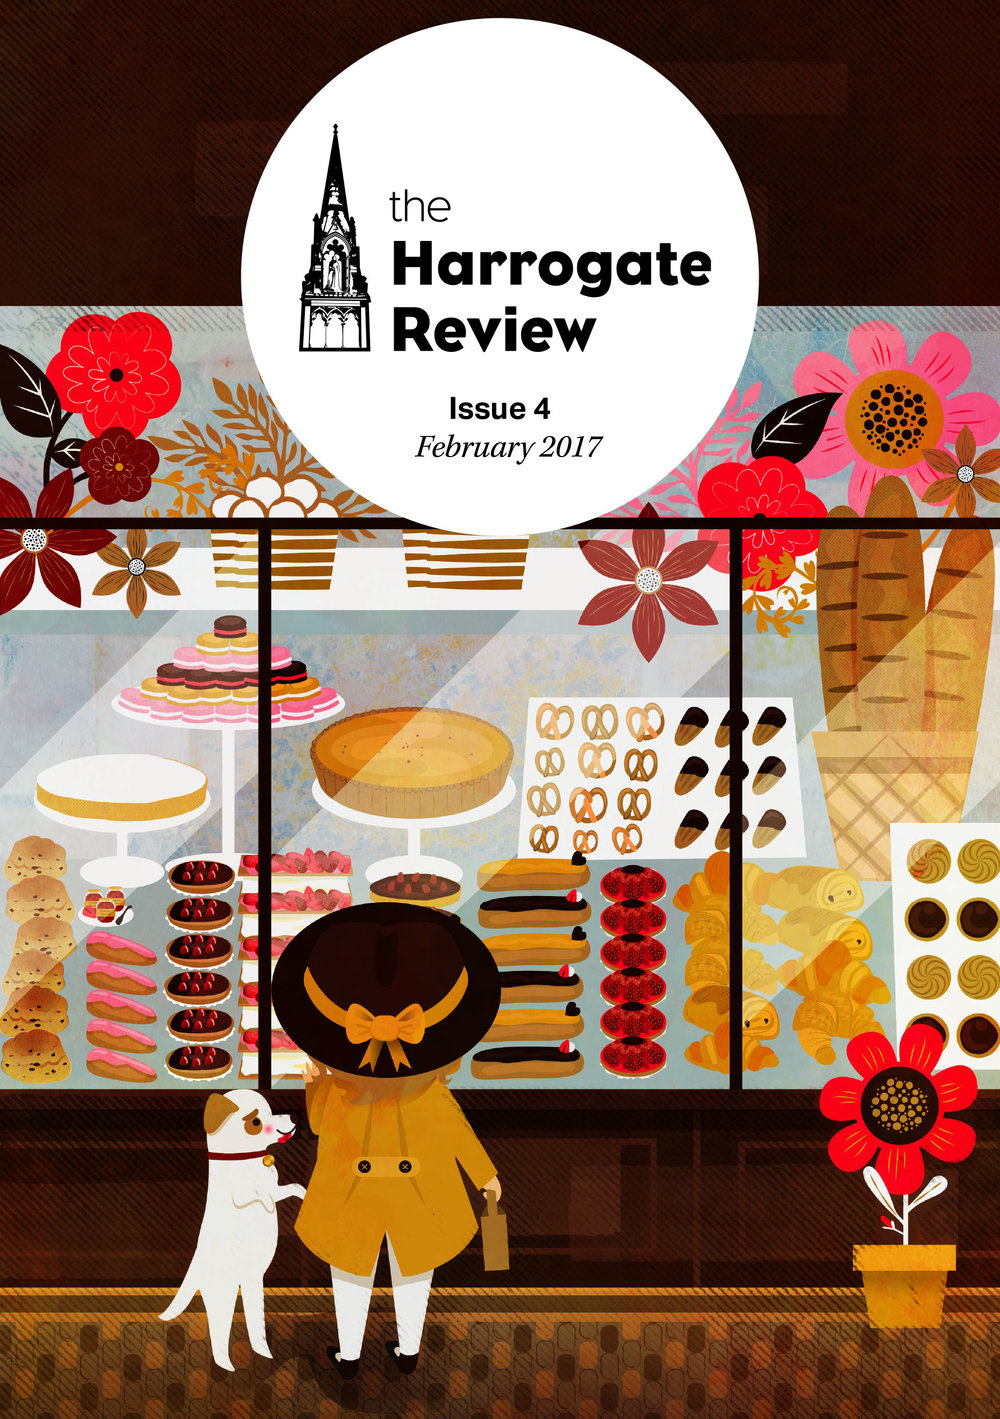 The Harrogate Review Cover Illustration